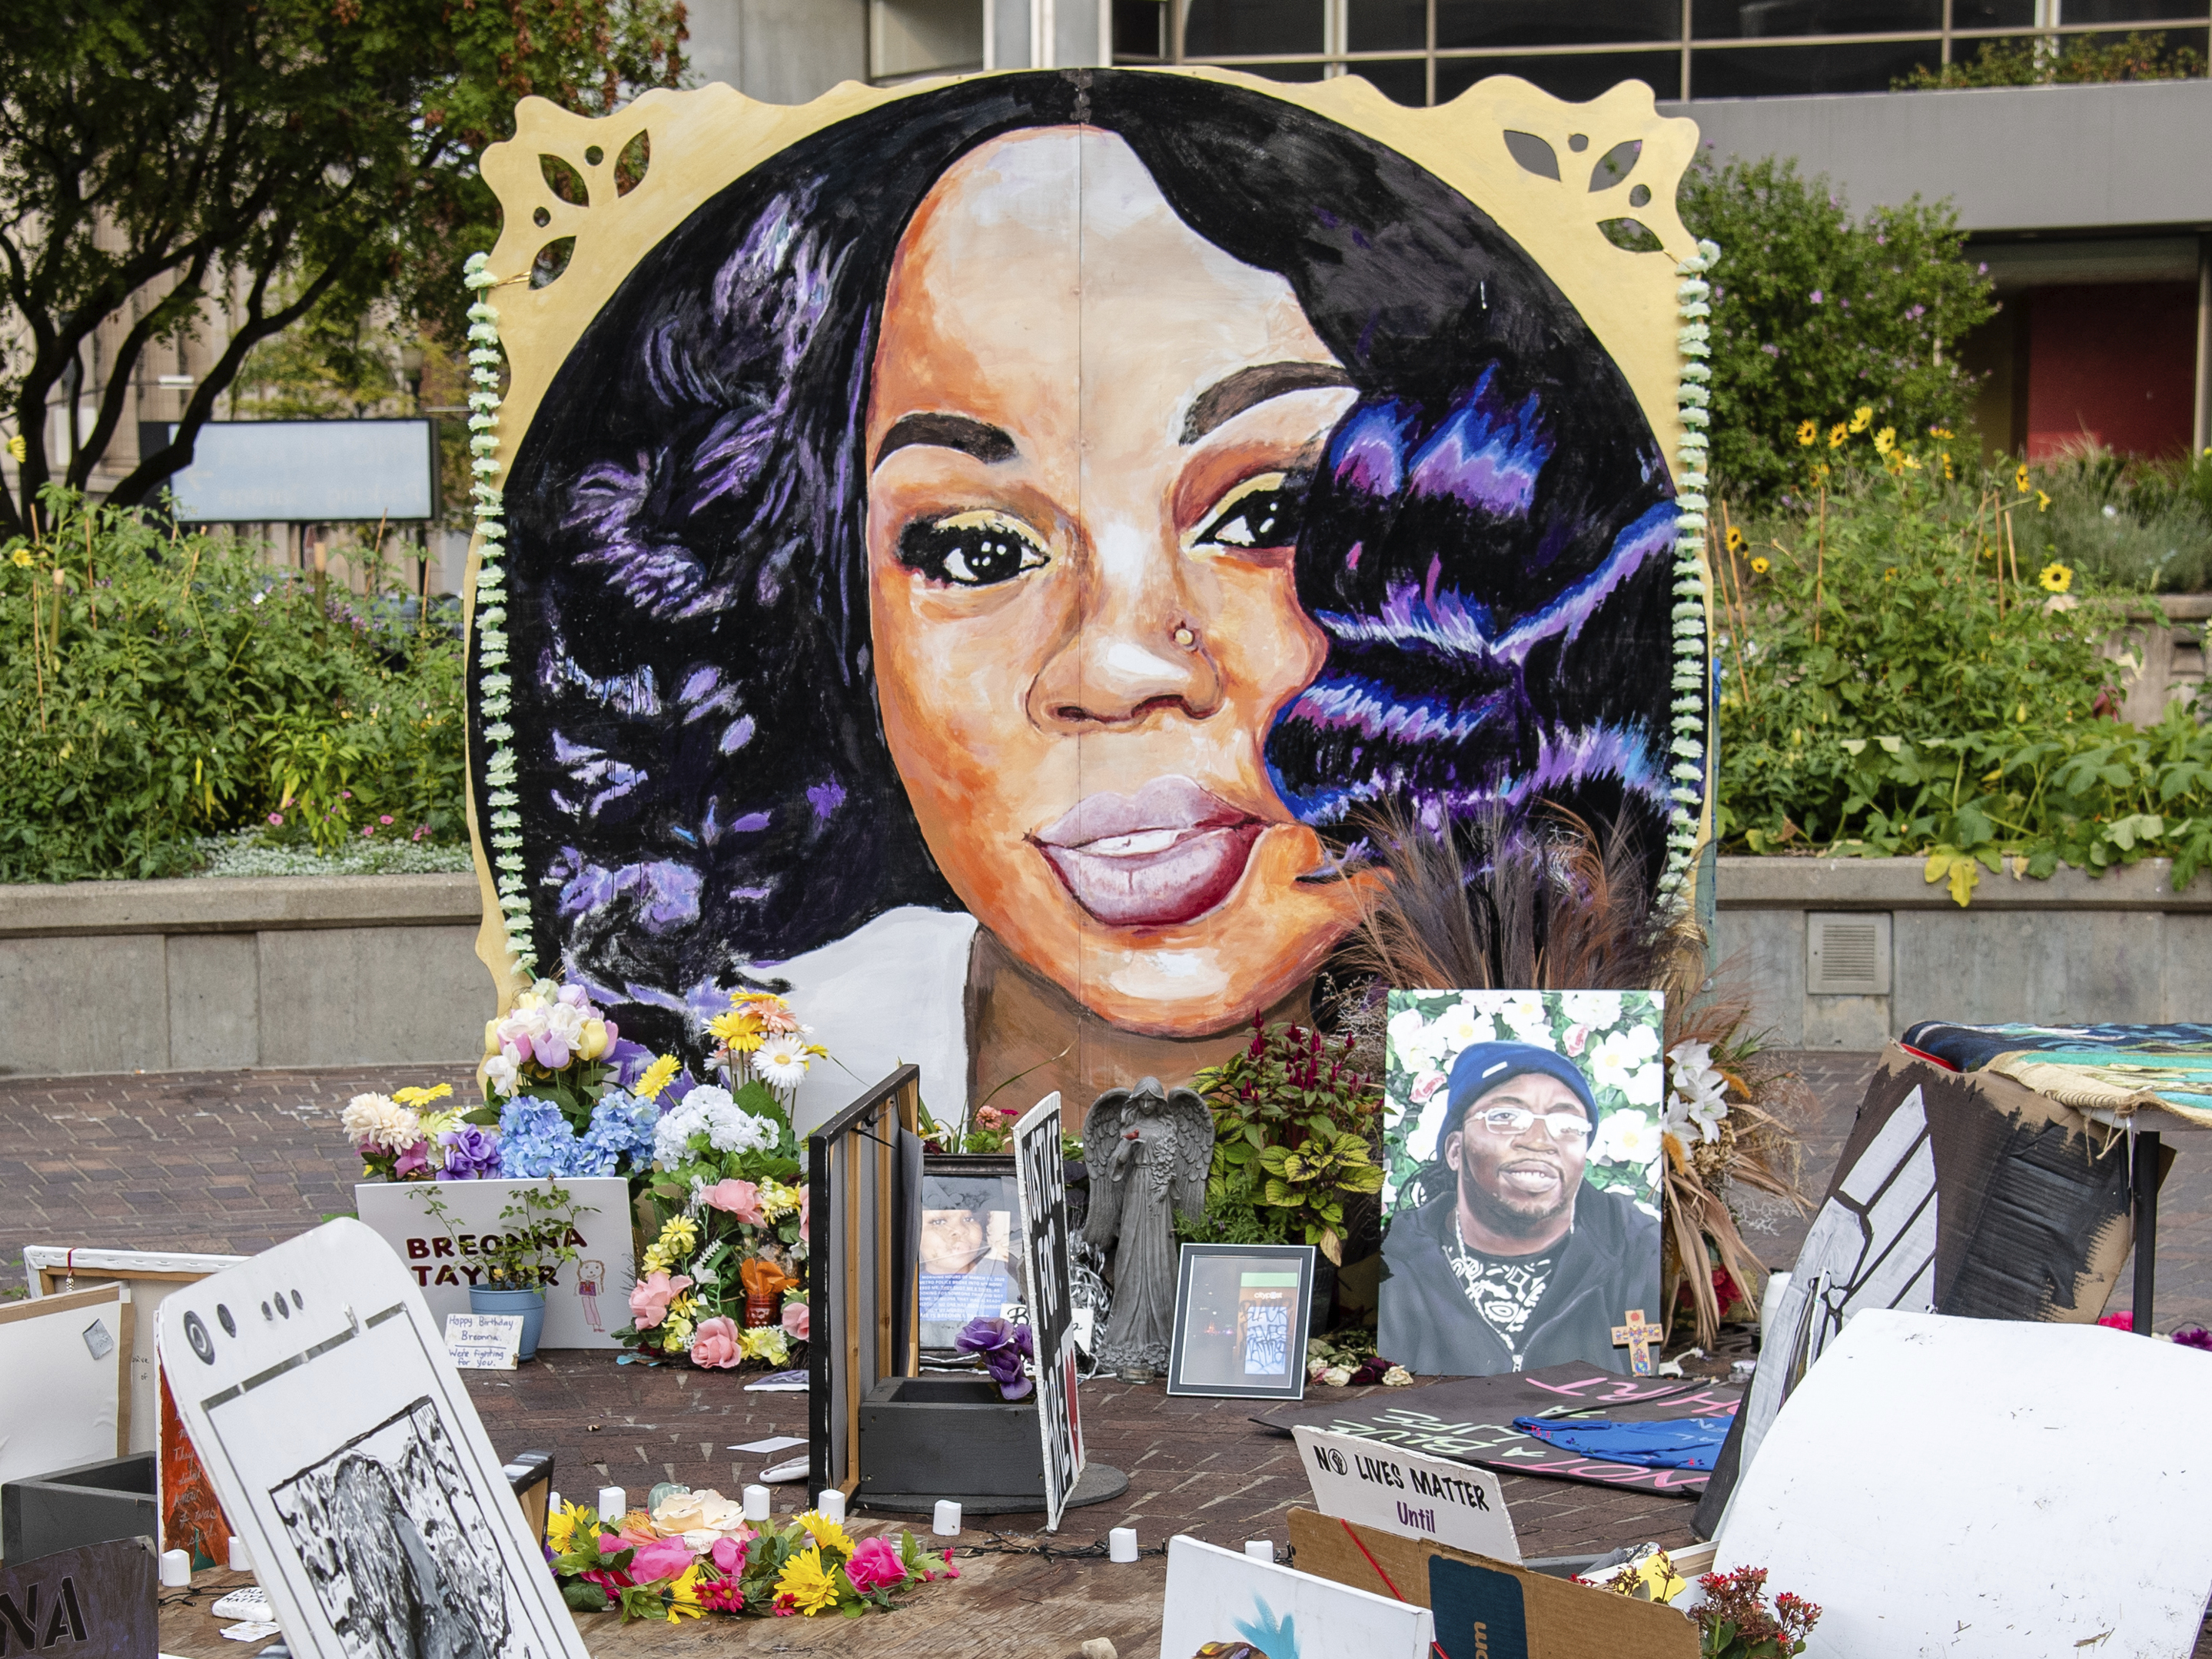 Plea Deal Required Drug Suspect To Name Breonna Taylor A Co Defendant Npr